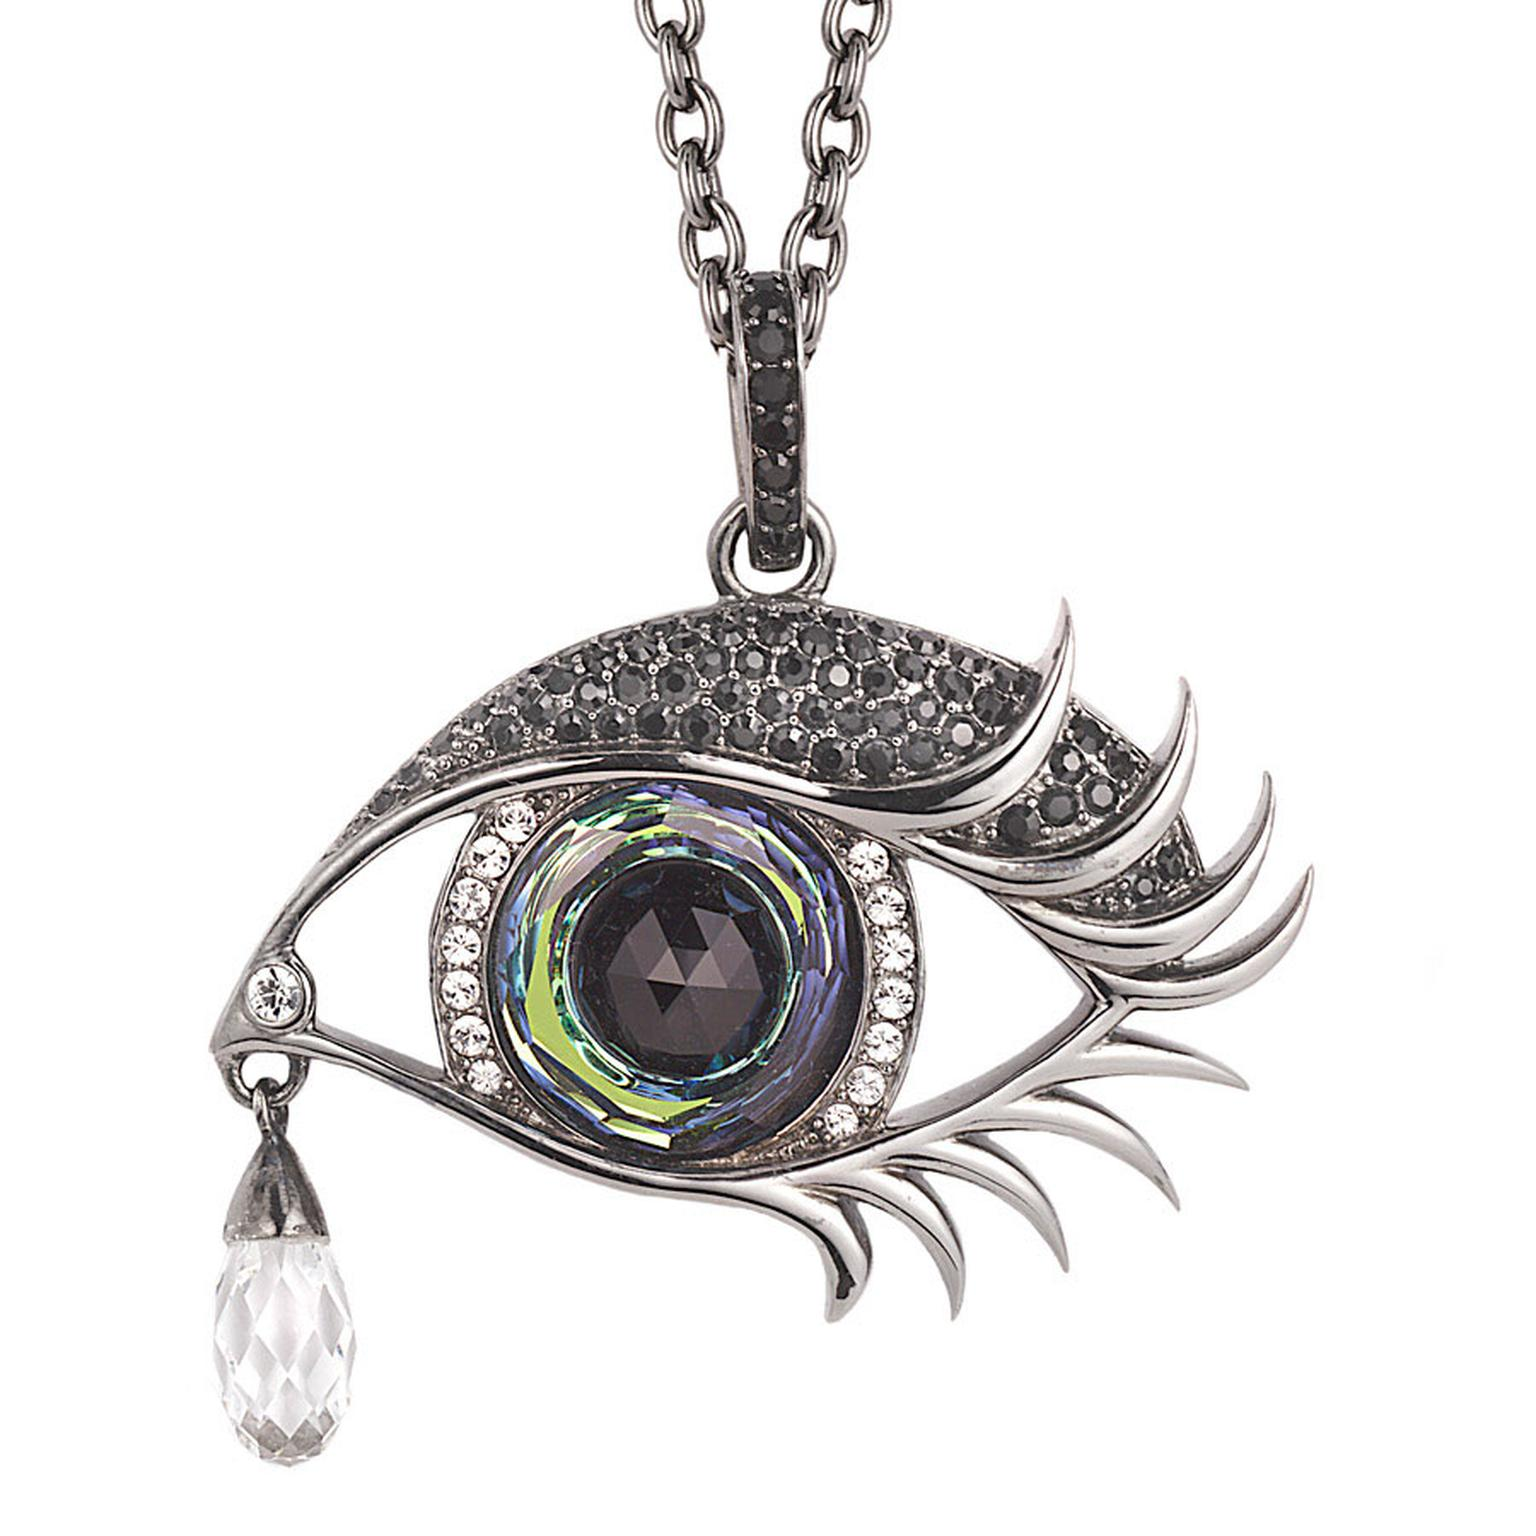 Stephen Webster Seven Deadly Sins Envy Pendant set in sterling silver with pave crystals 650.